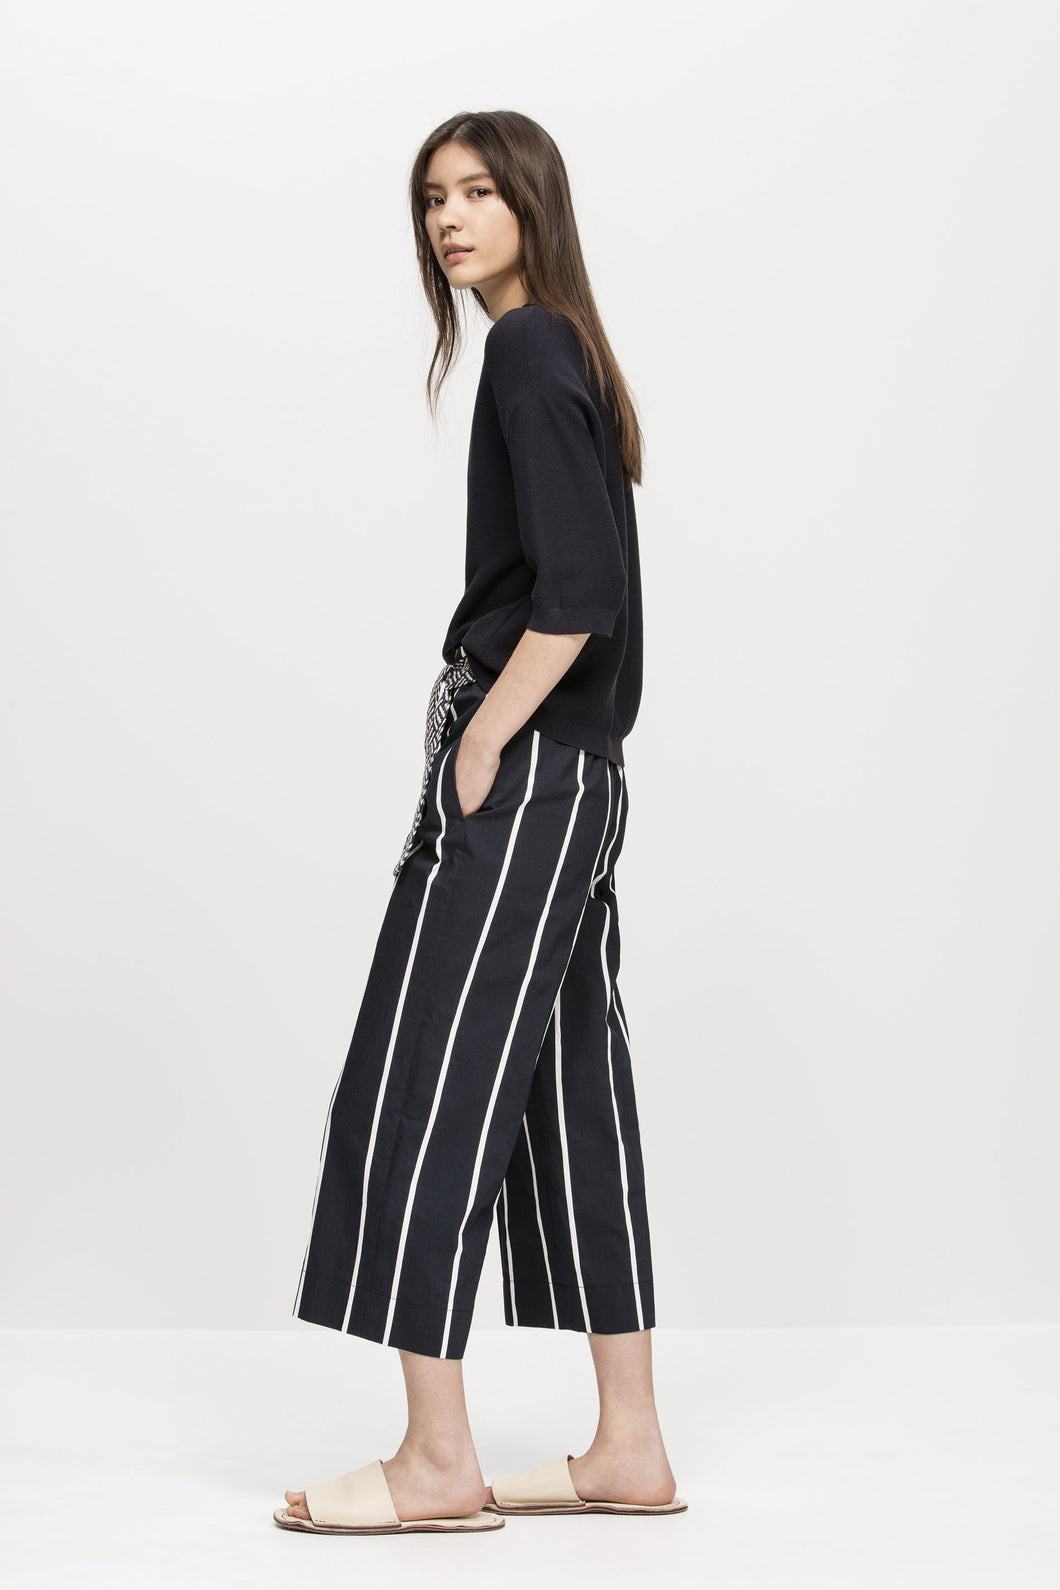 Navy and white striped pants